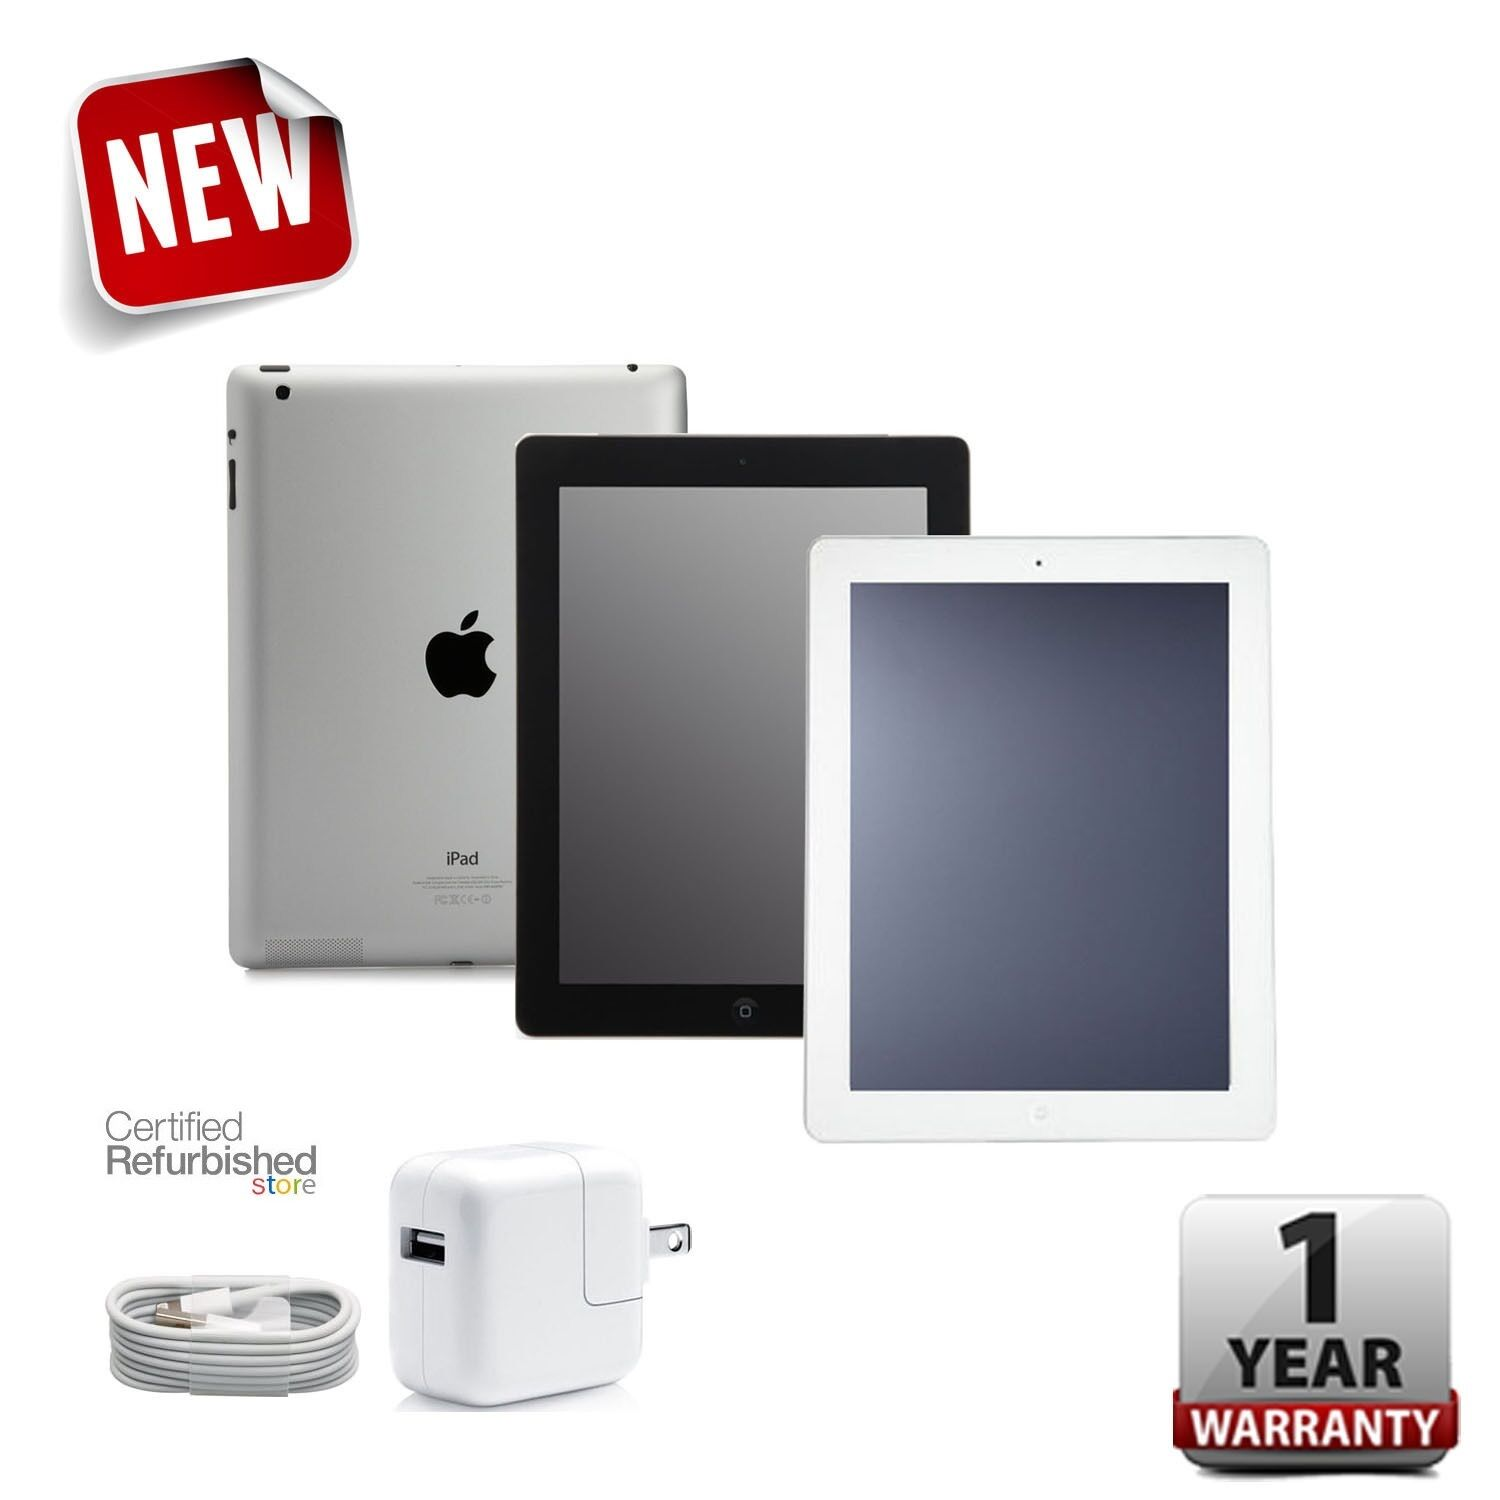 FLASH SALE! iPad 2 16GB/32GB/64GB Black/White 9.7in Wi-Fi Tab + 1-Year Warranty